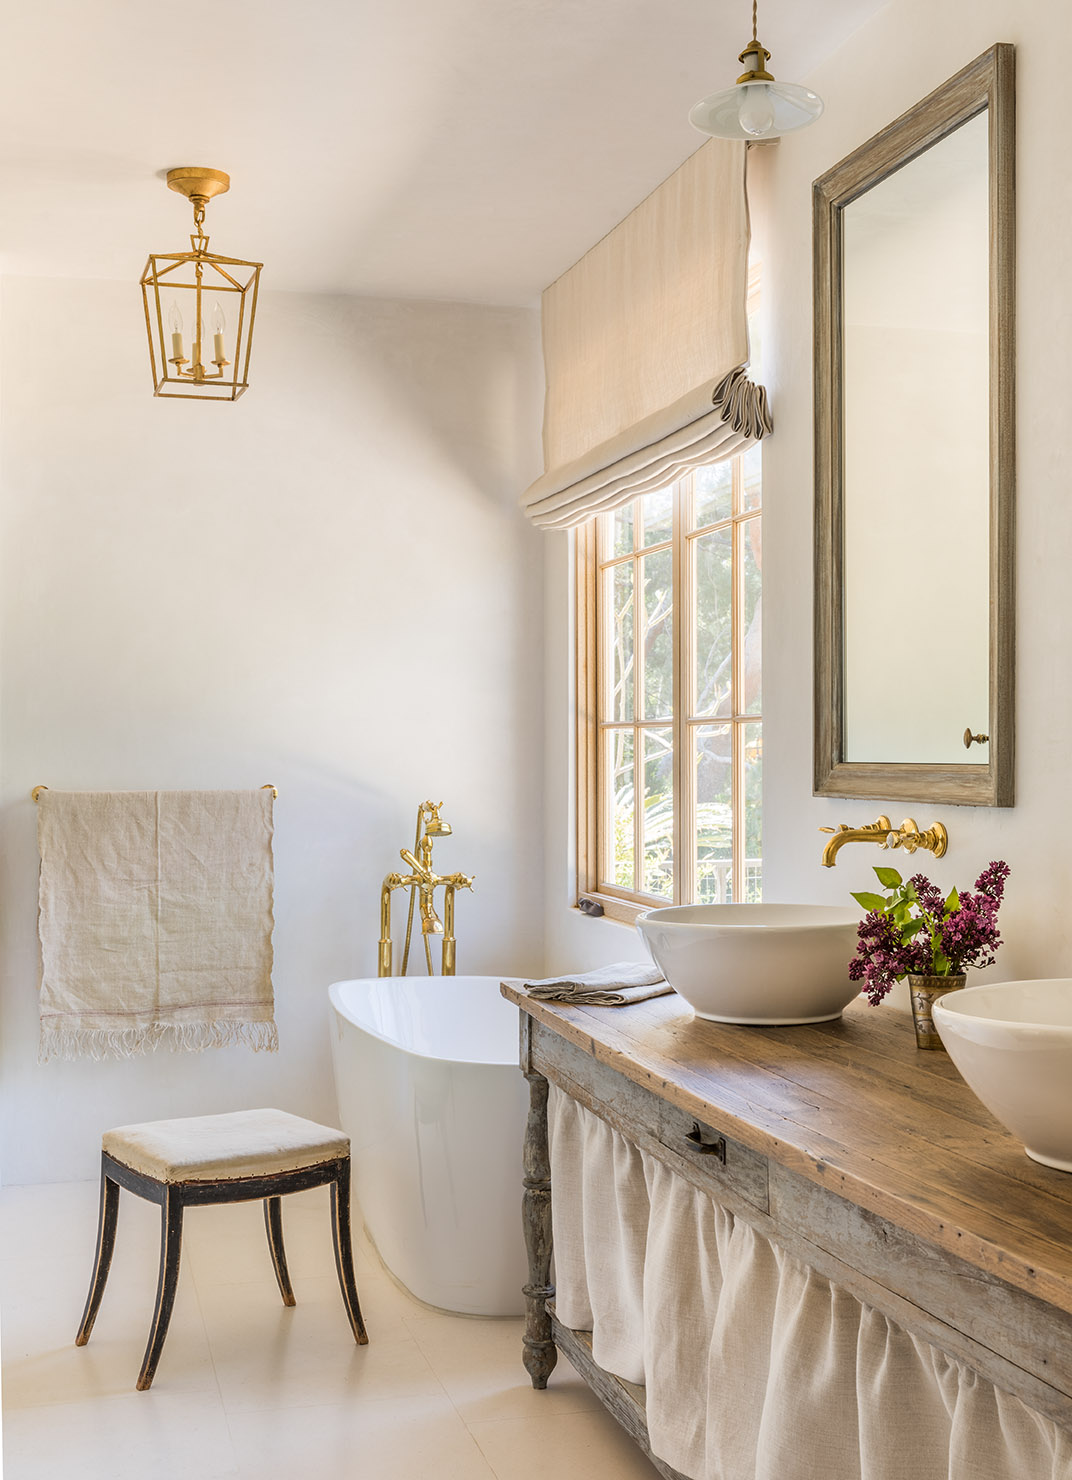 Breathtaking, timeless, and tranquil bathroom design with natural materials, European antiques, and bespoke design from Giannetti Home. #bathroomdesign #europeancountry #sophisticatedstyle #brookegiannetti